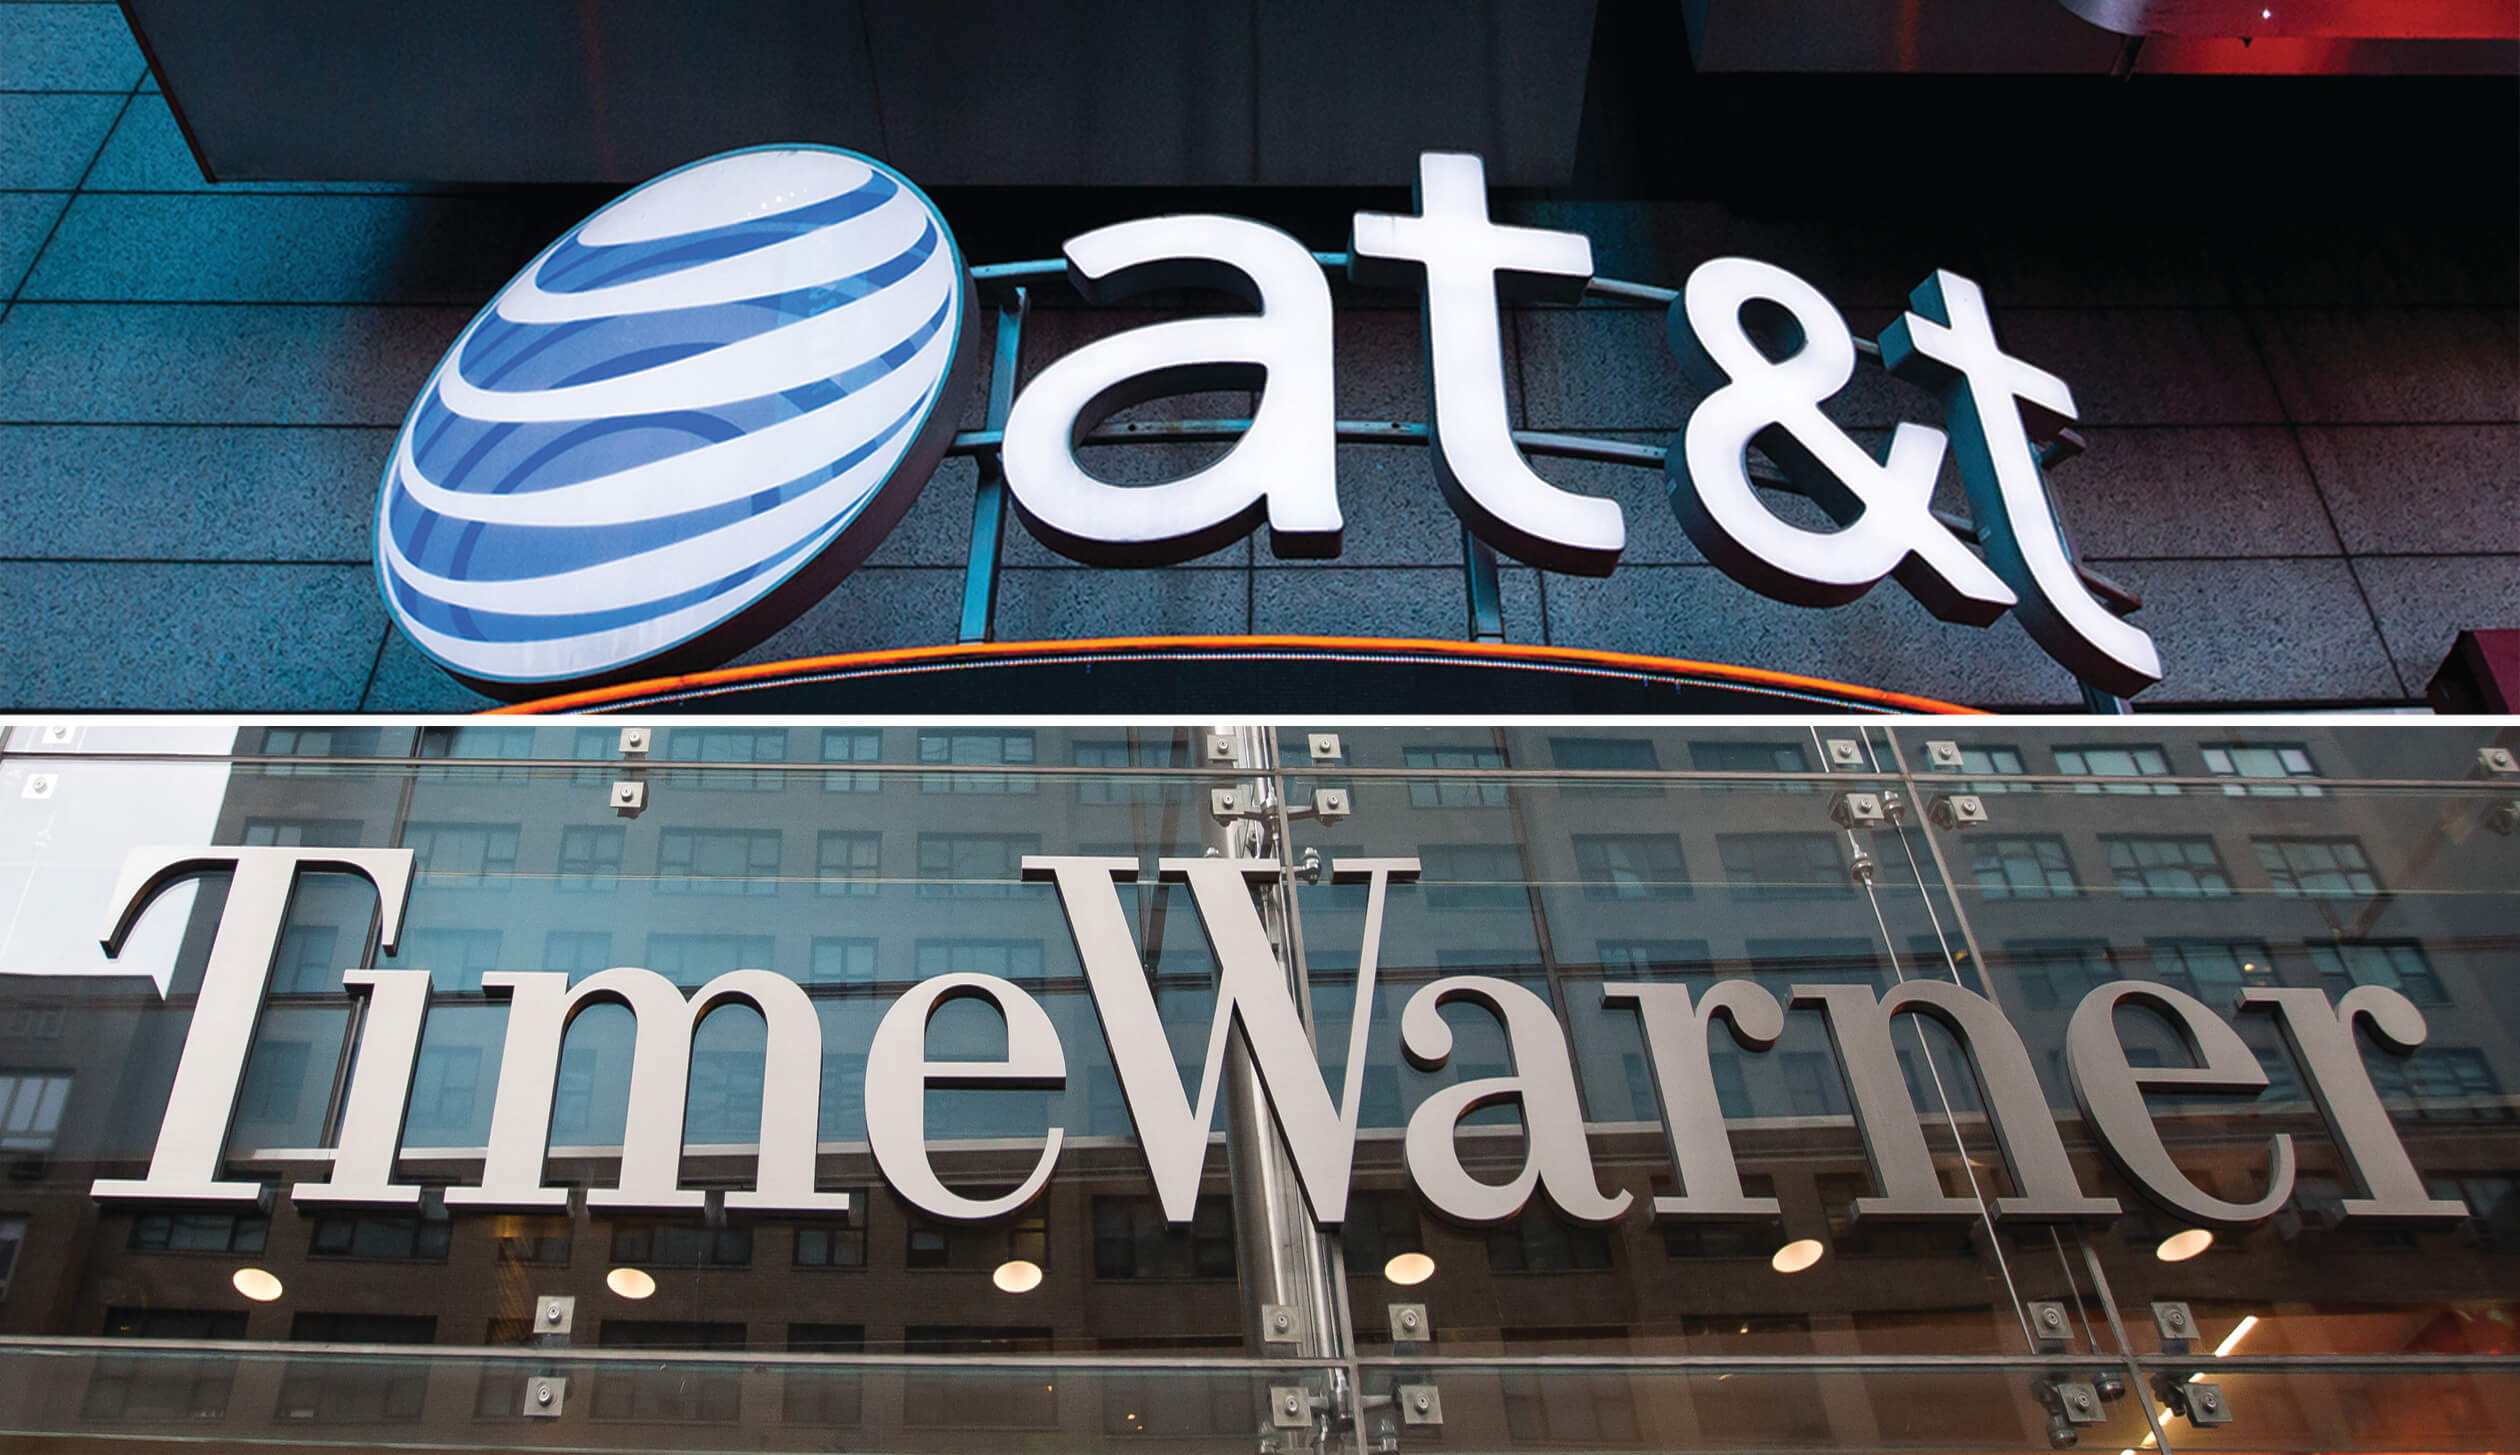 ATT Time Warner Merger